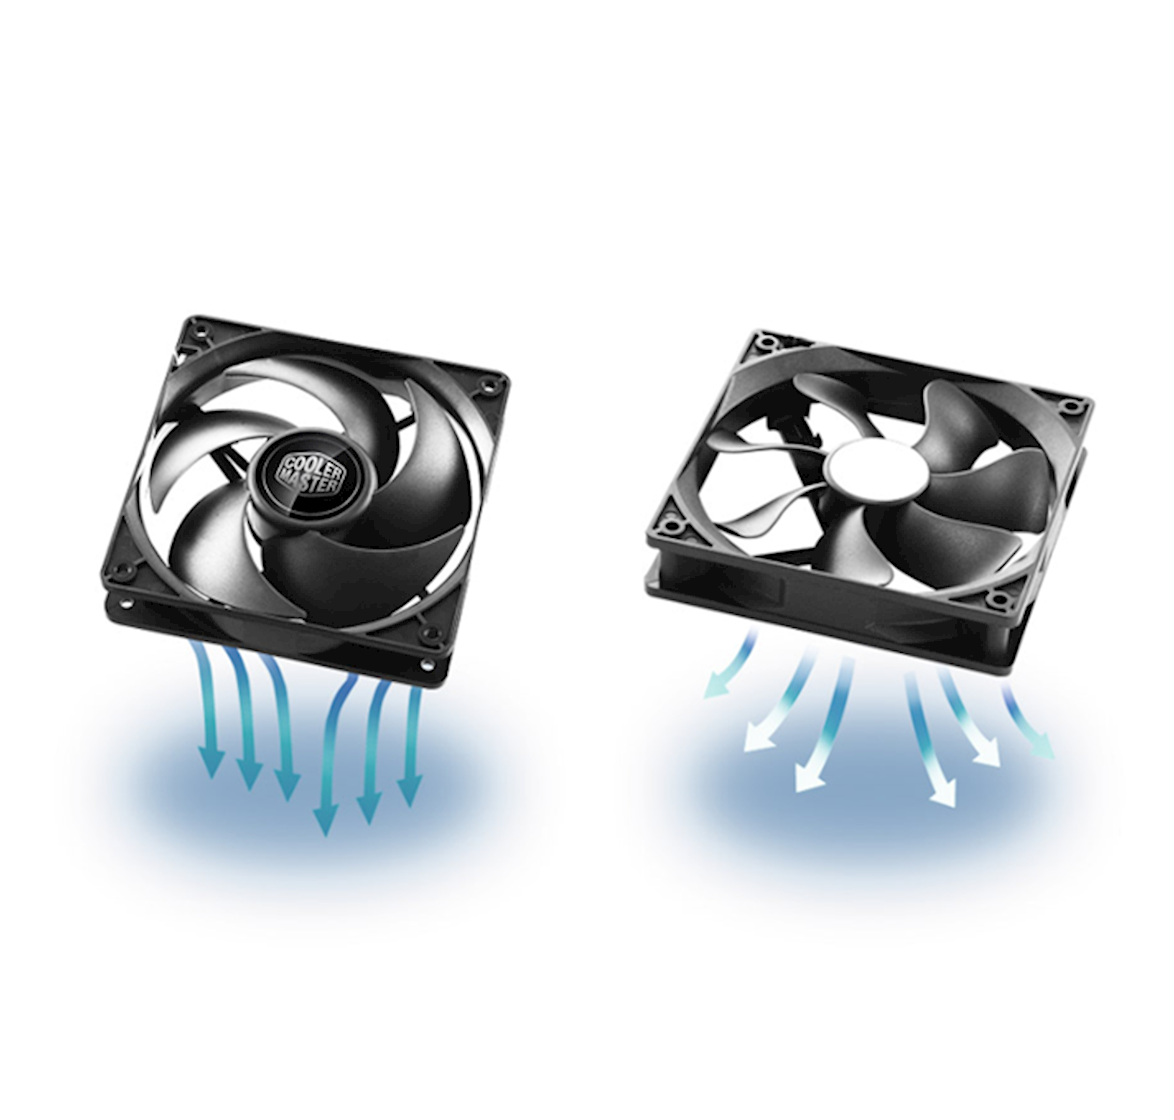 Protect your fan and generate more air pressure